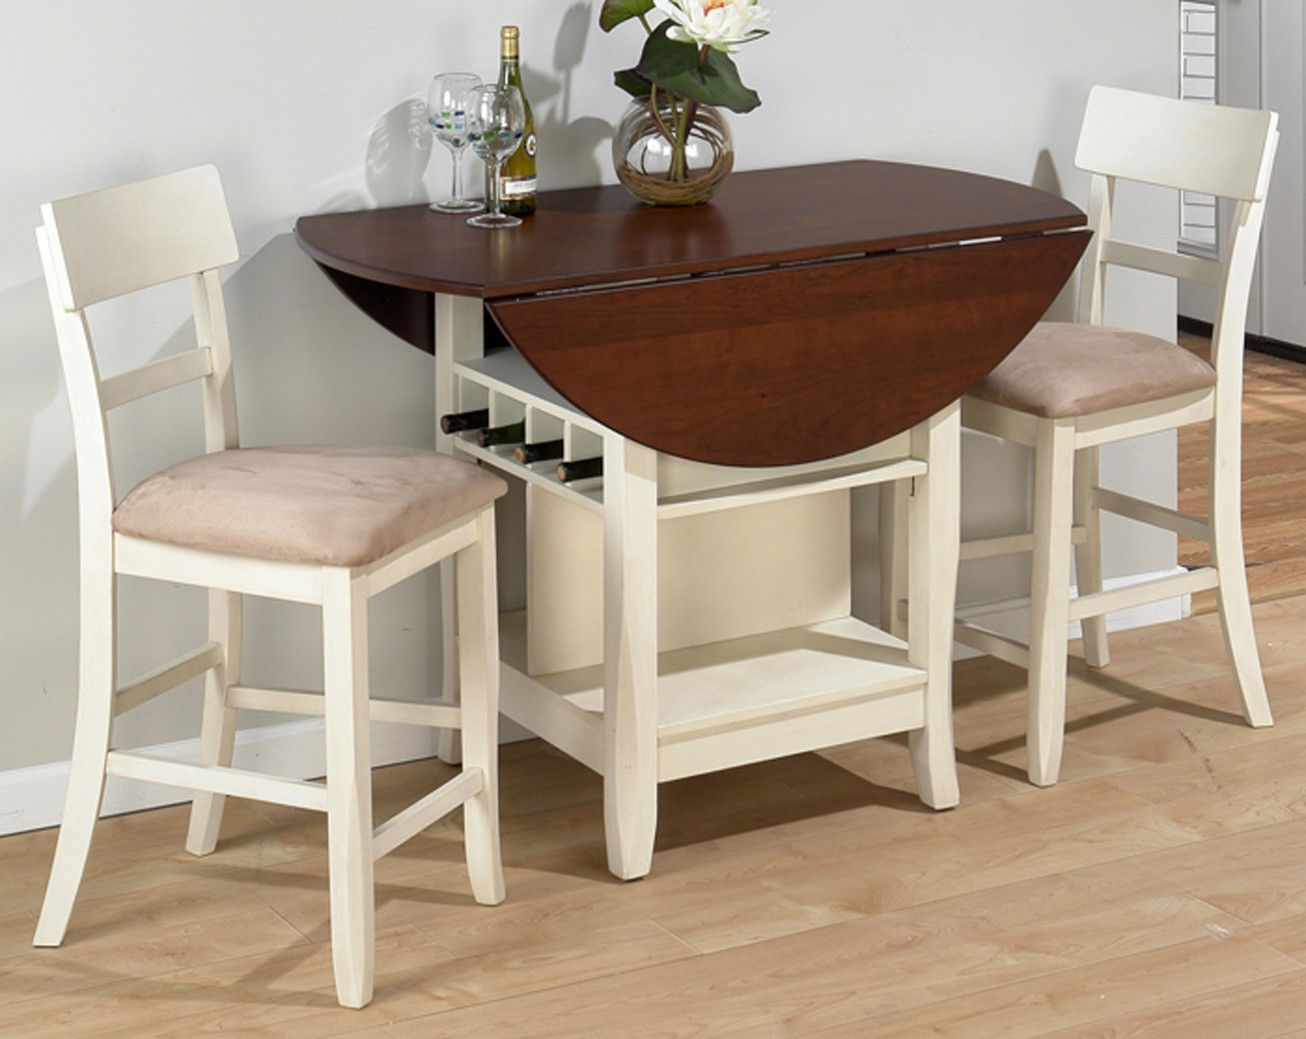 Compact Dining Space Arrangement With Drop Leaf